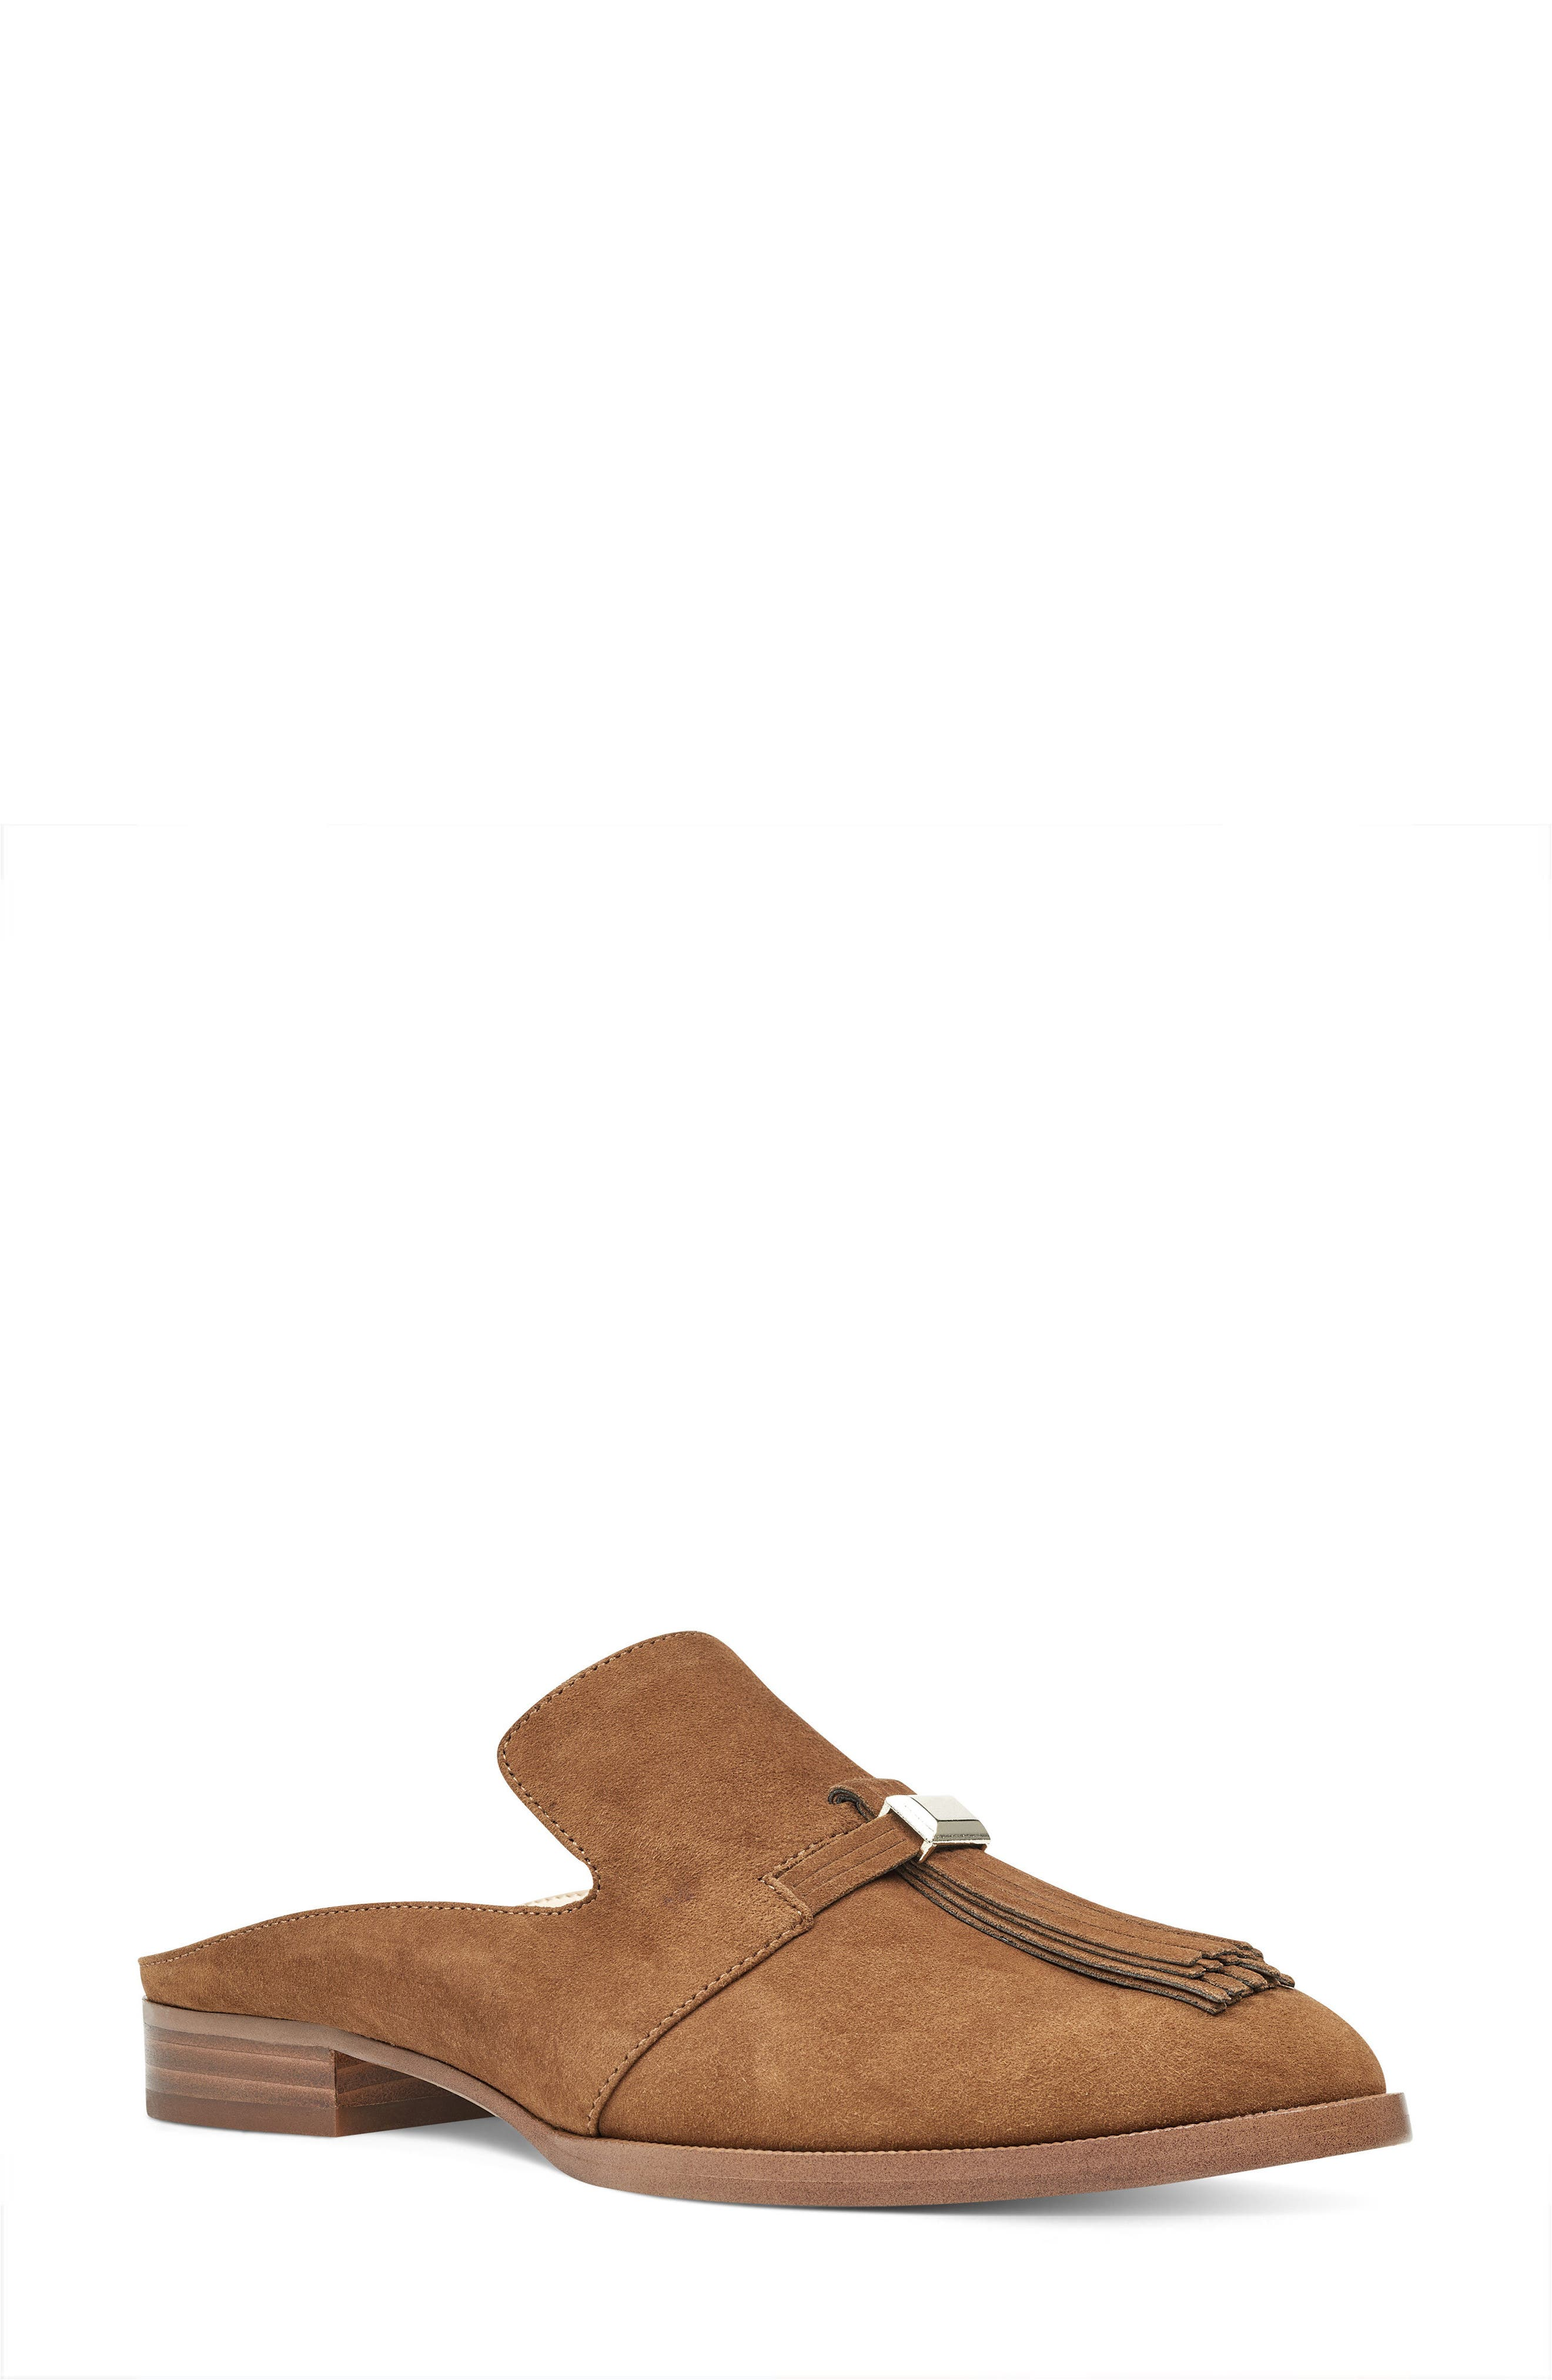 Huebart Loafer Mule,                         Main,                         color, Brown Suede